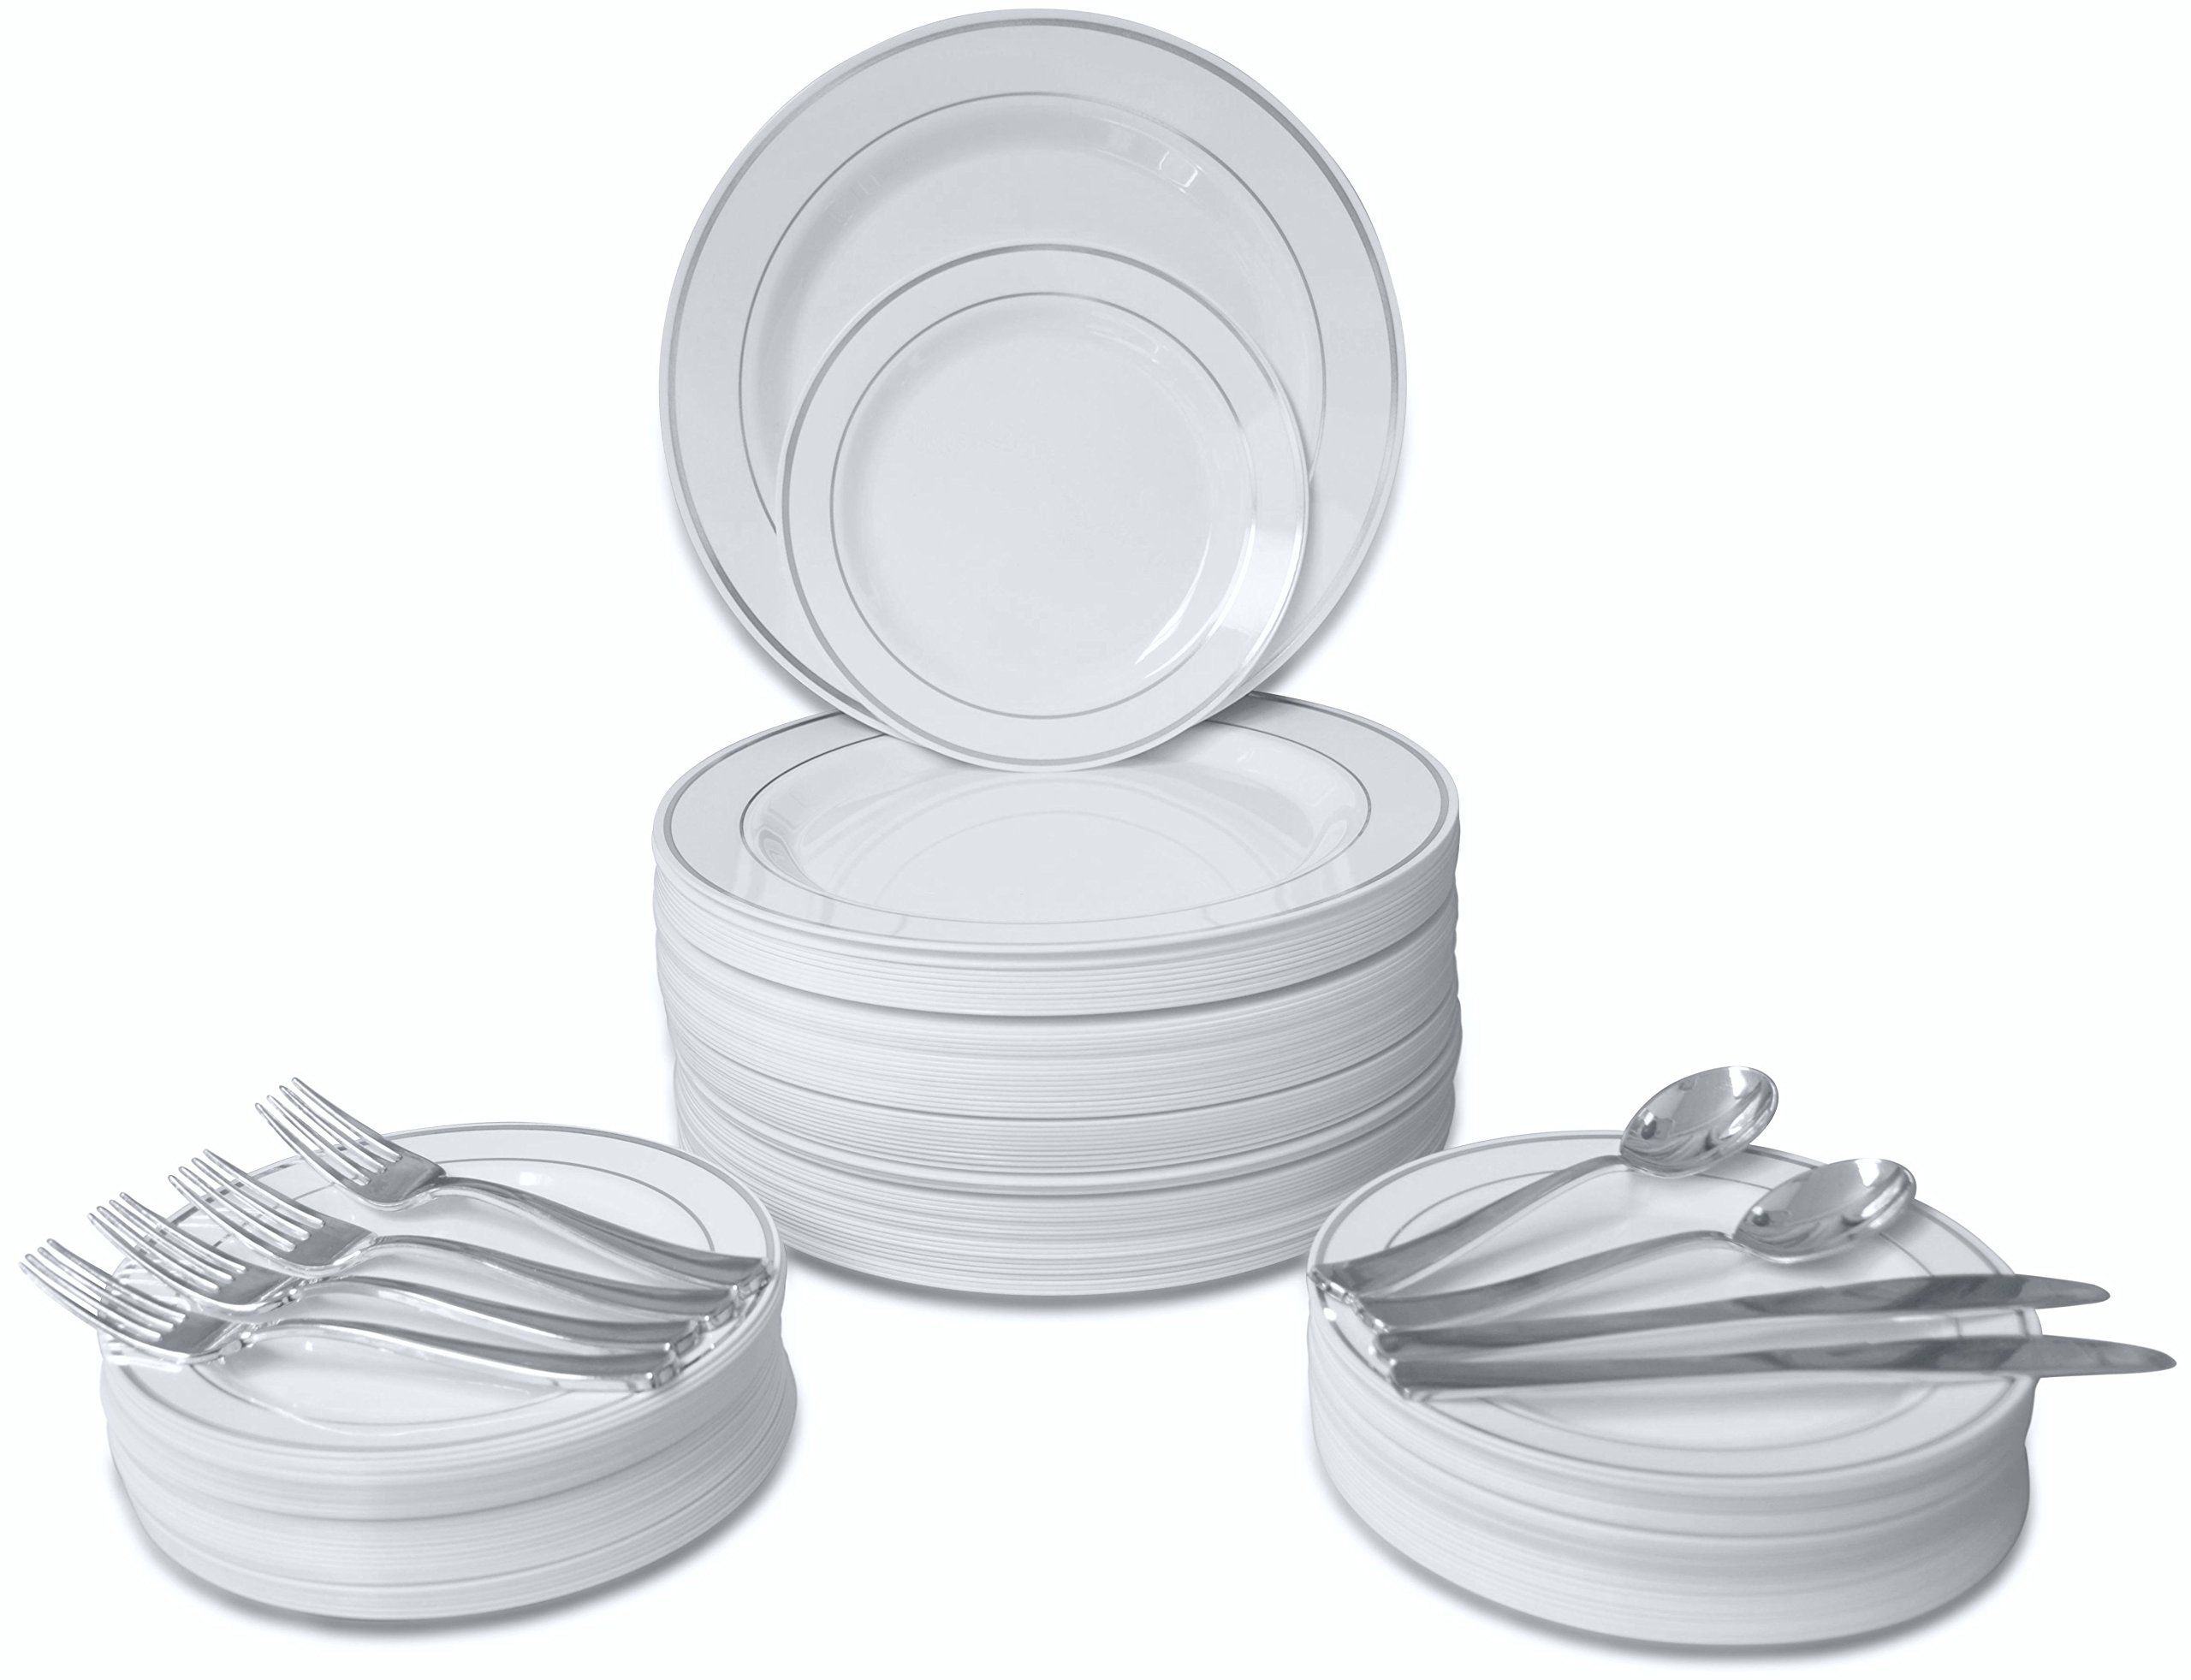 OCCASIONS \  720 PCS / 120 GUEST Wedding Disposable Plastic Plate and Silverware Combo Set  sc 1 st  Pinterest & OCCASIONS \